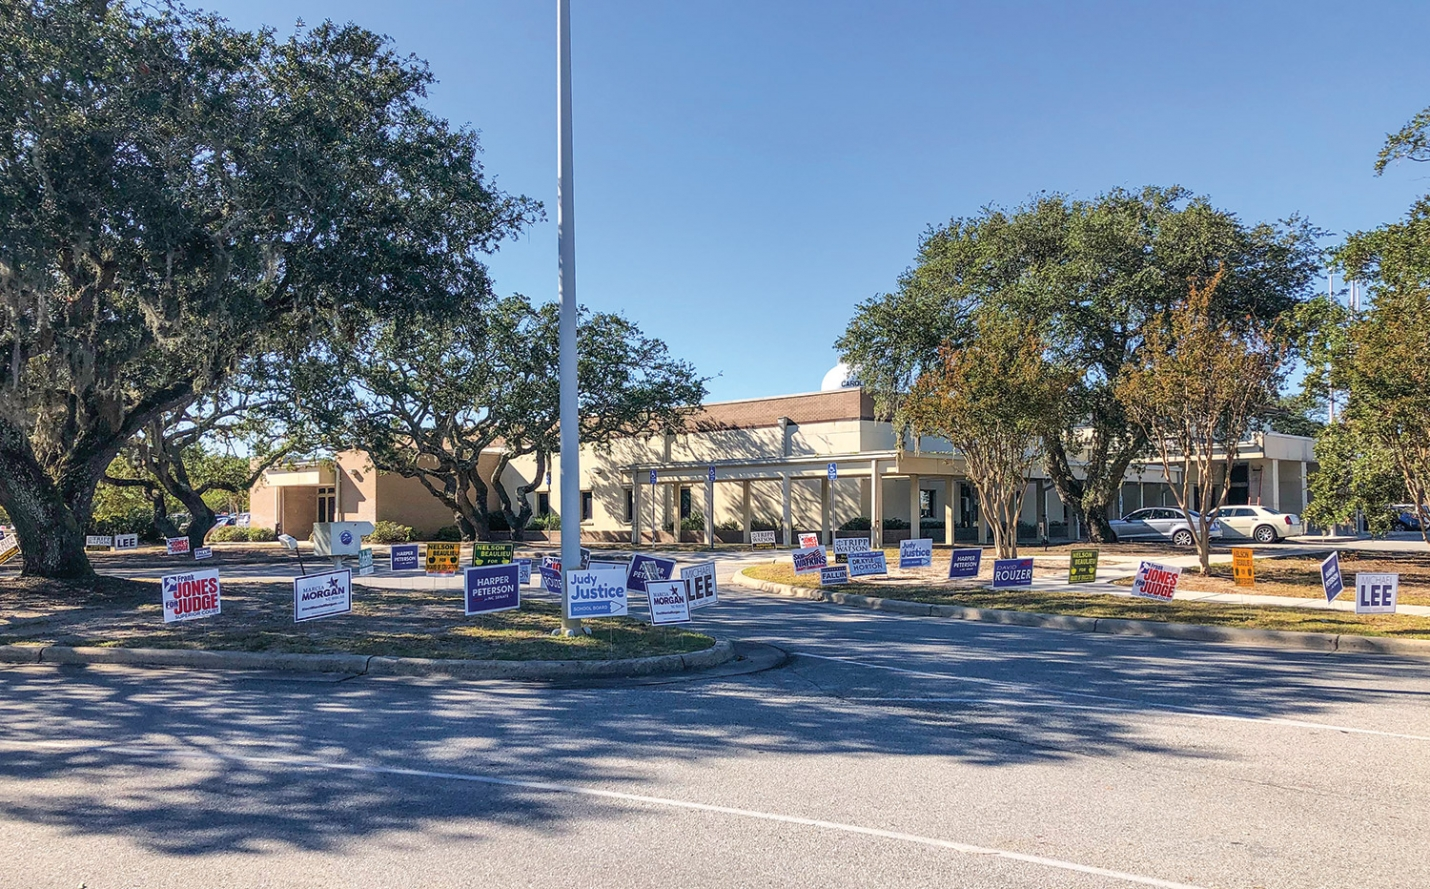 Election Day is November 6th, but you can vote early at a number of polling locations throughout New Hanover County. (Pictured Above:) Signs placed at the entrance to the polling location at the Carolina Beach Town Hall on Tuesday afternoon October 30th.  Early voting began October 17th, and will continue through Saturday November 3rd.